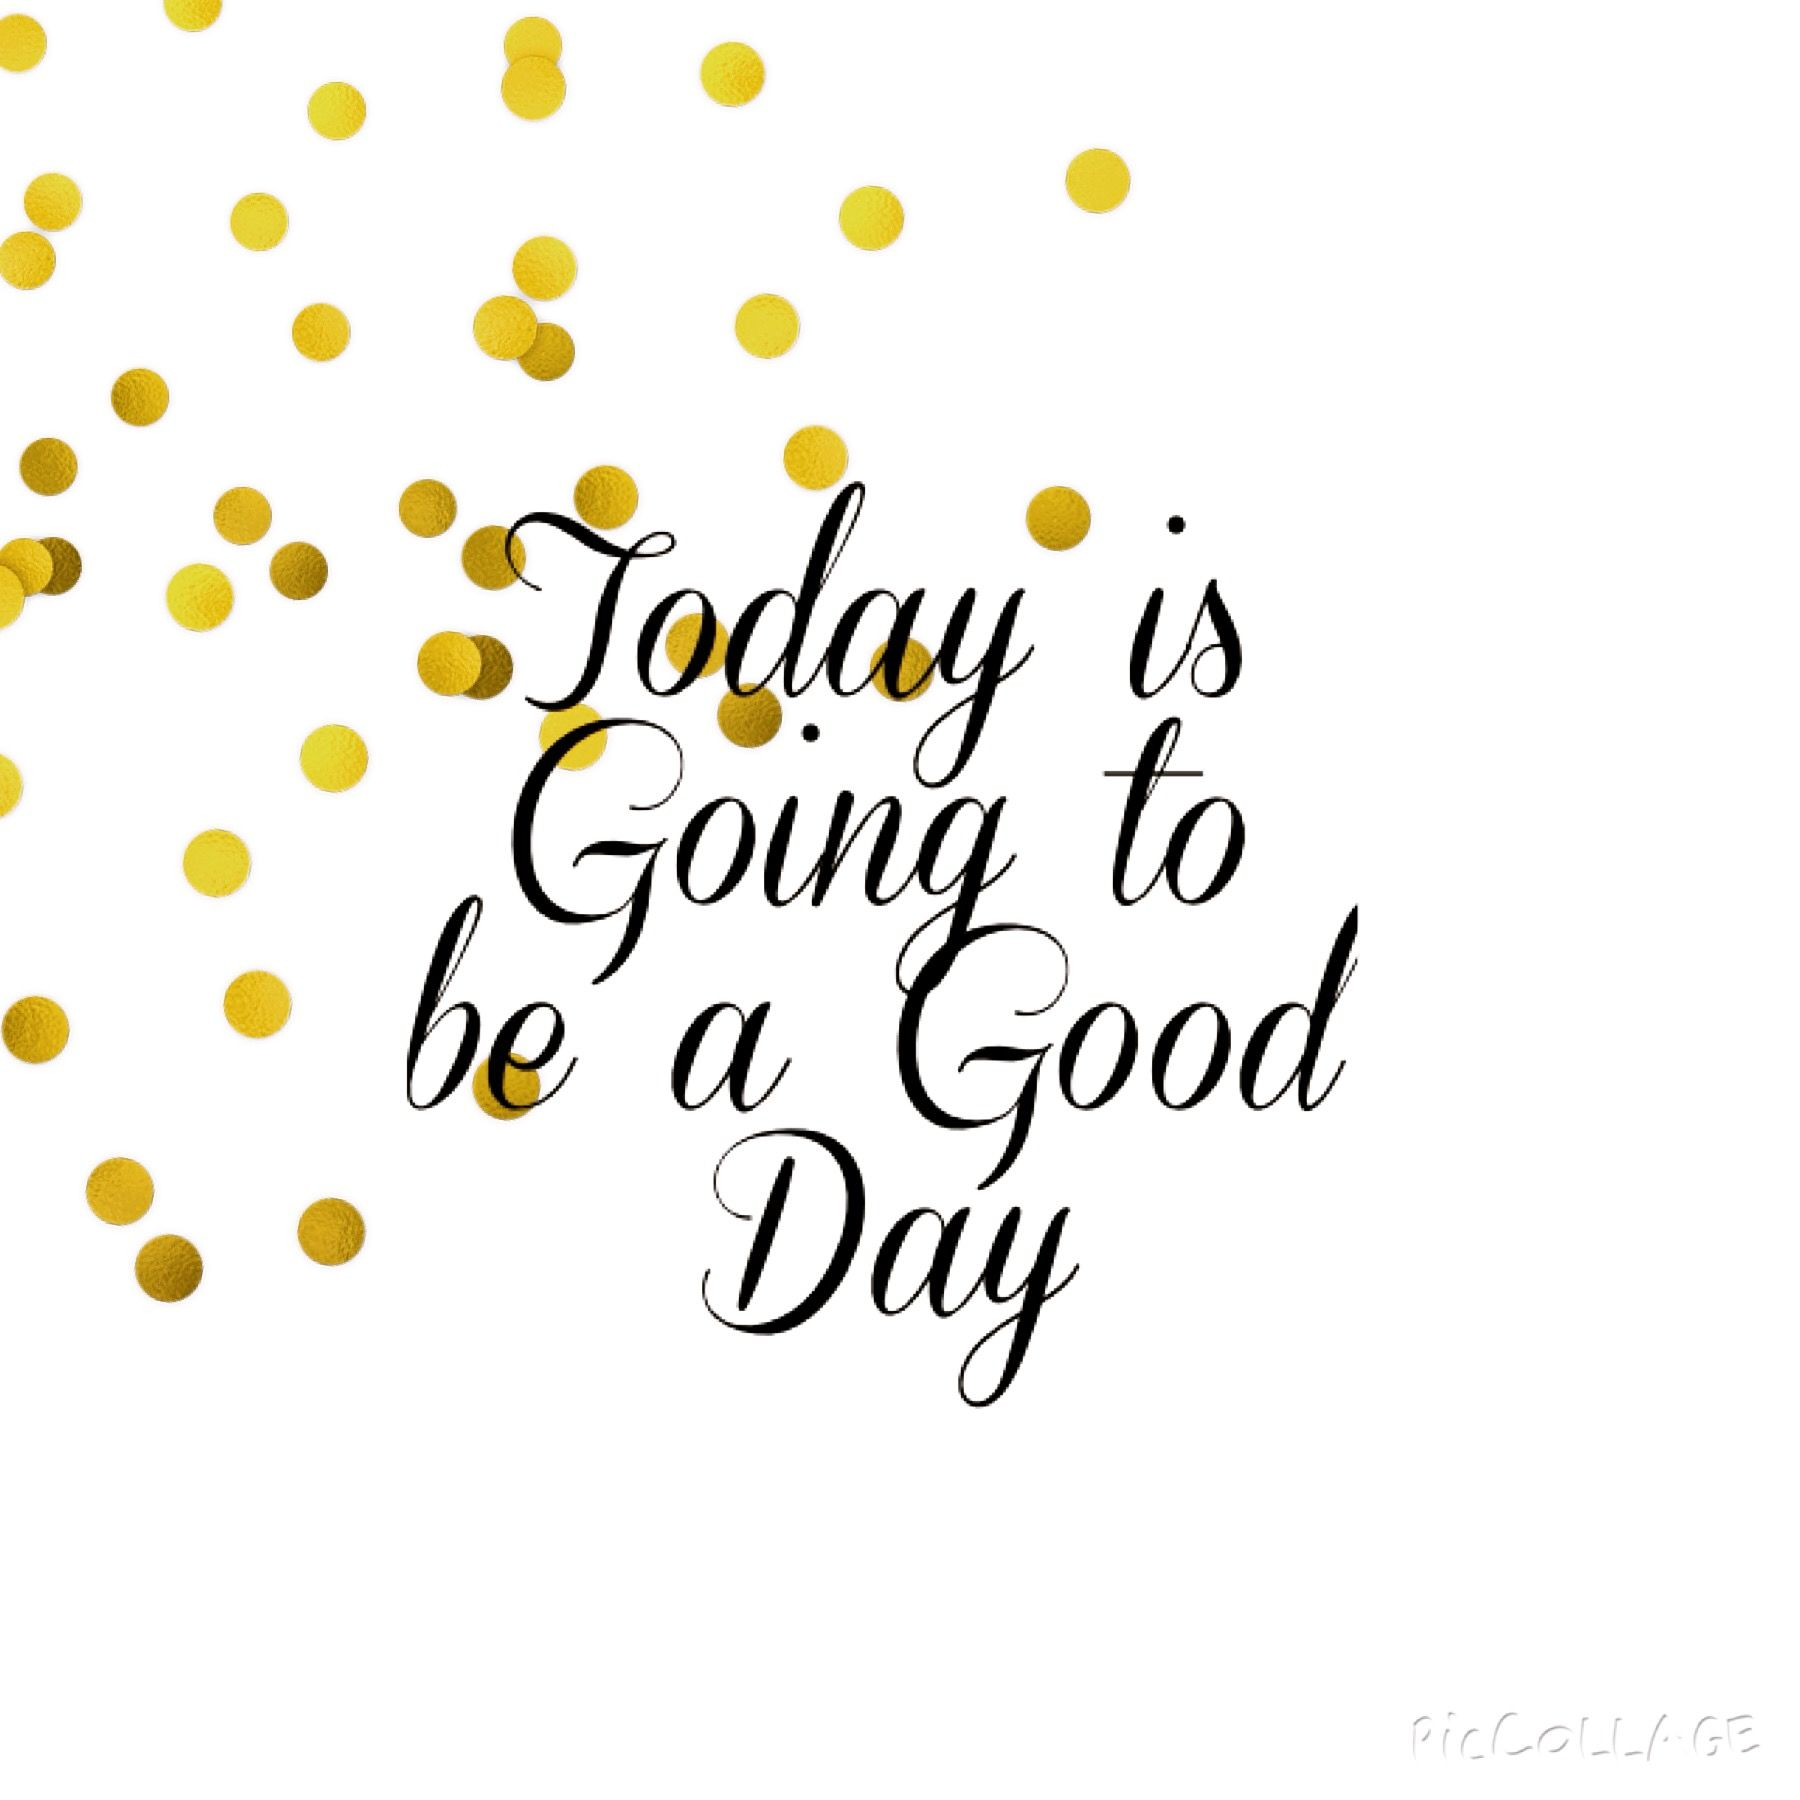 """Today is going to be a good day"" - thought for the day, every day   Made by me, for everybody"